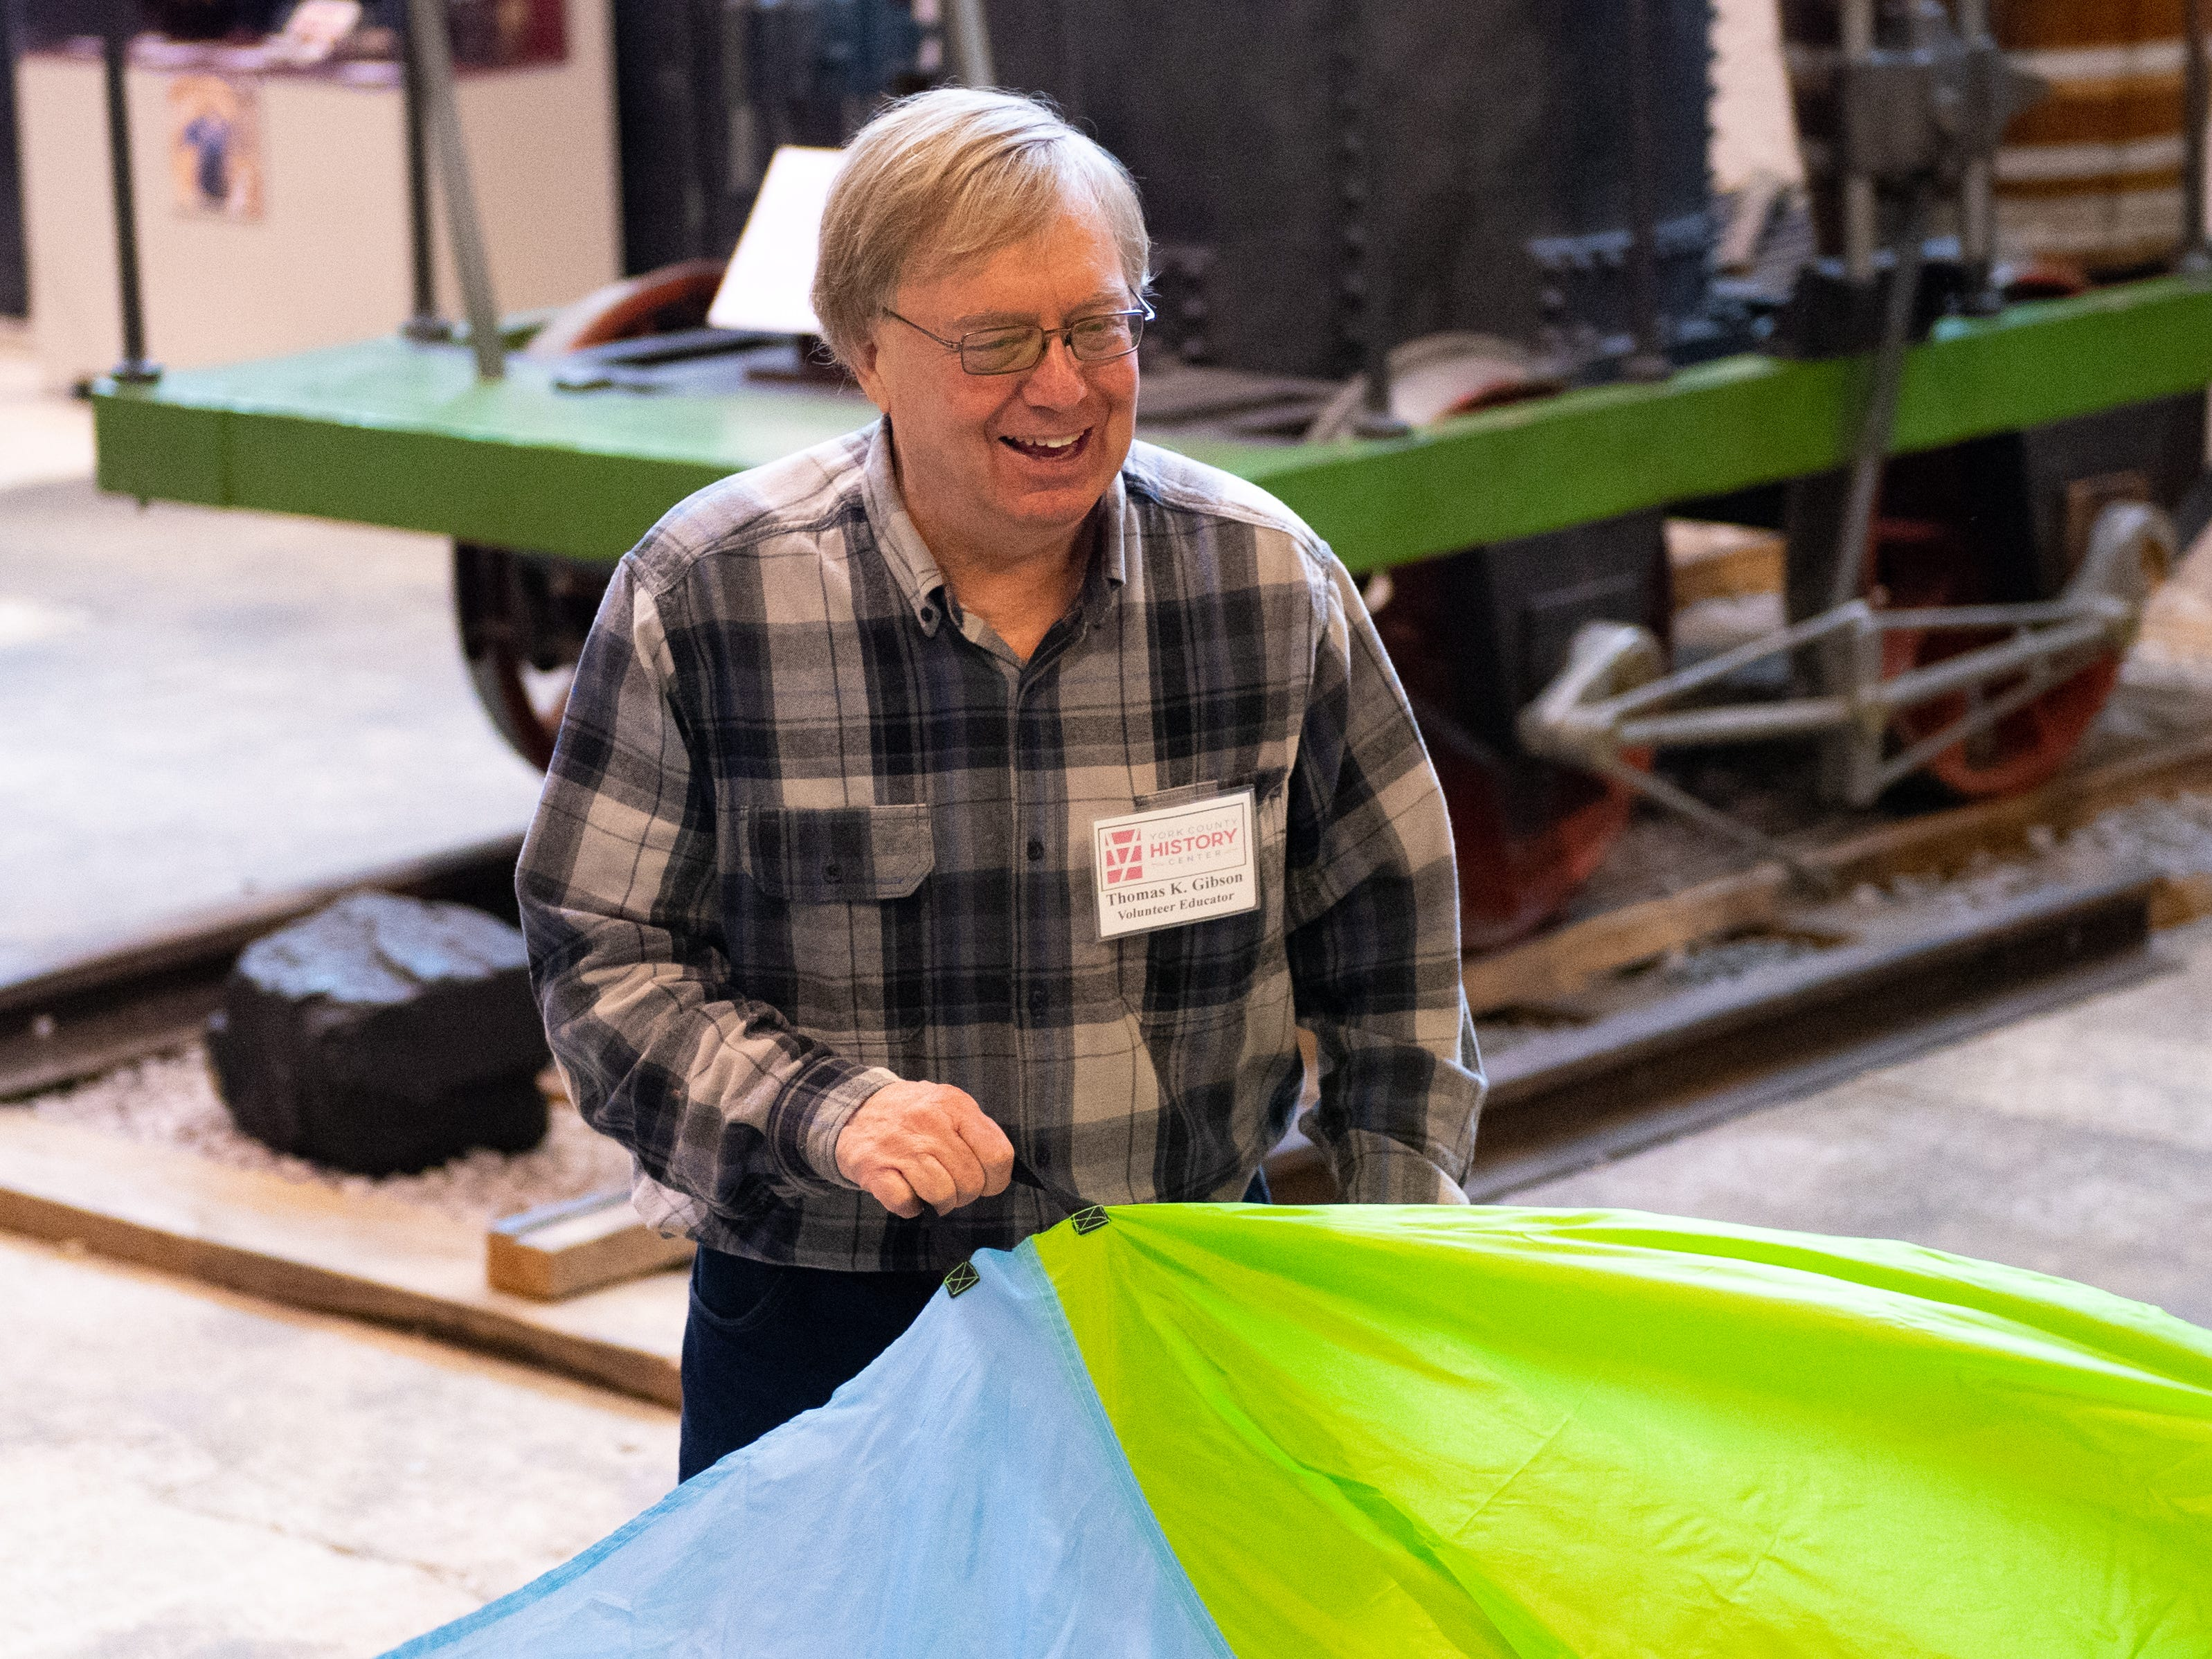 Volunteer Tom Gibson teaches children parachute games during family activity day at the Agricultural and Industrial Museum, Friday, December 28, 2018.